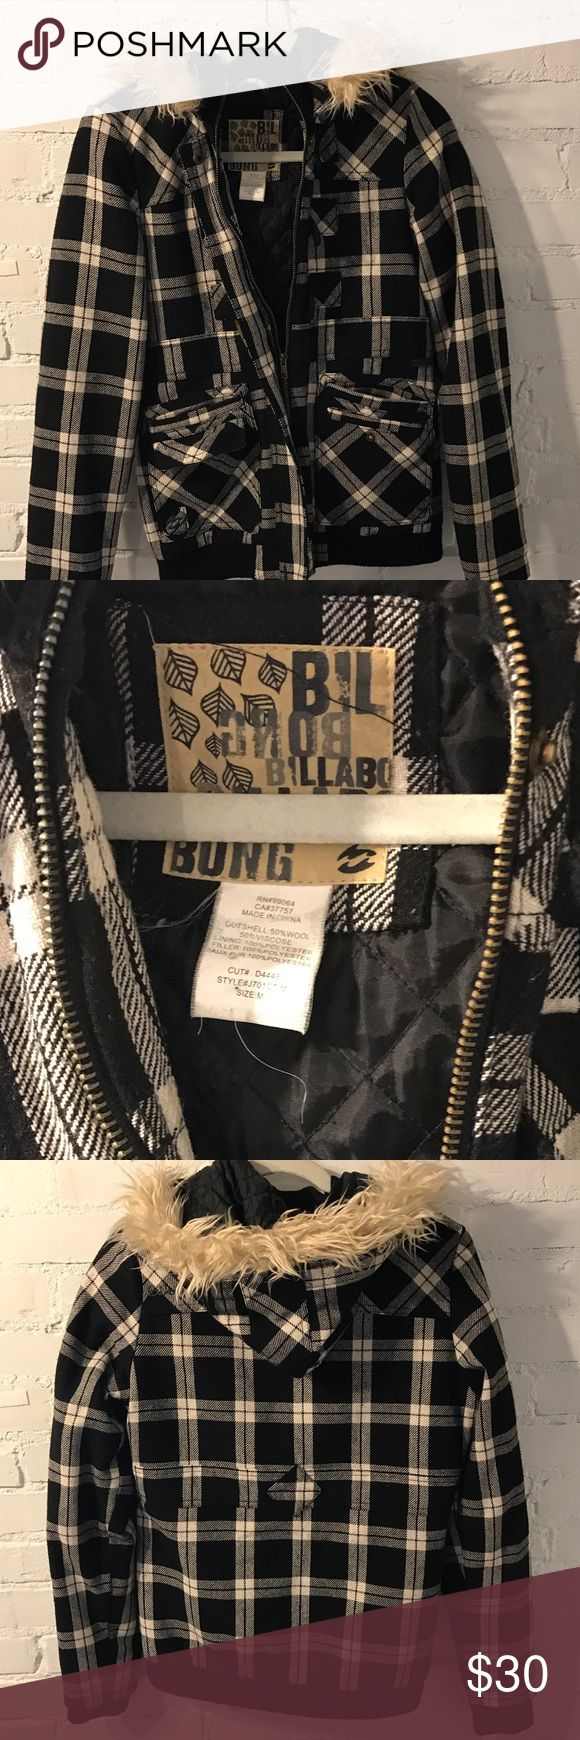 Billabong Plaid jacket Black and white trendy Plaid jacket with quilted interior and fur hood.  Fitted with tight waistband. Billabong Jackets & Coats